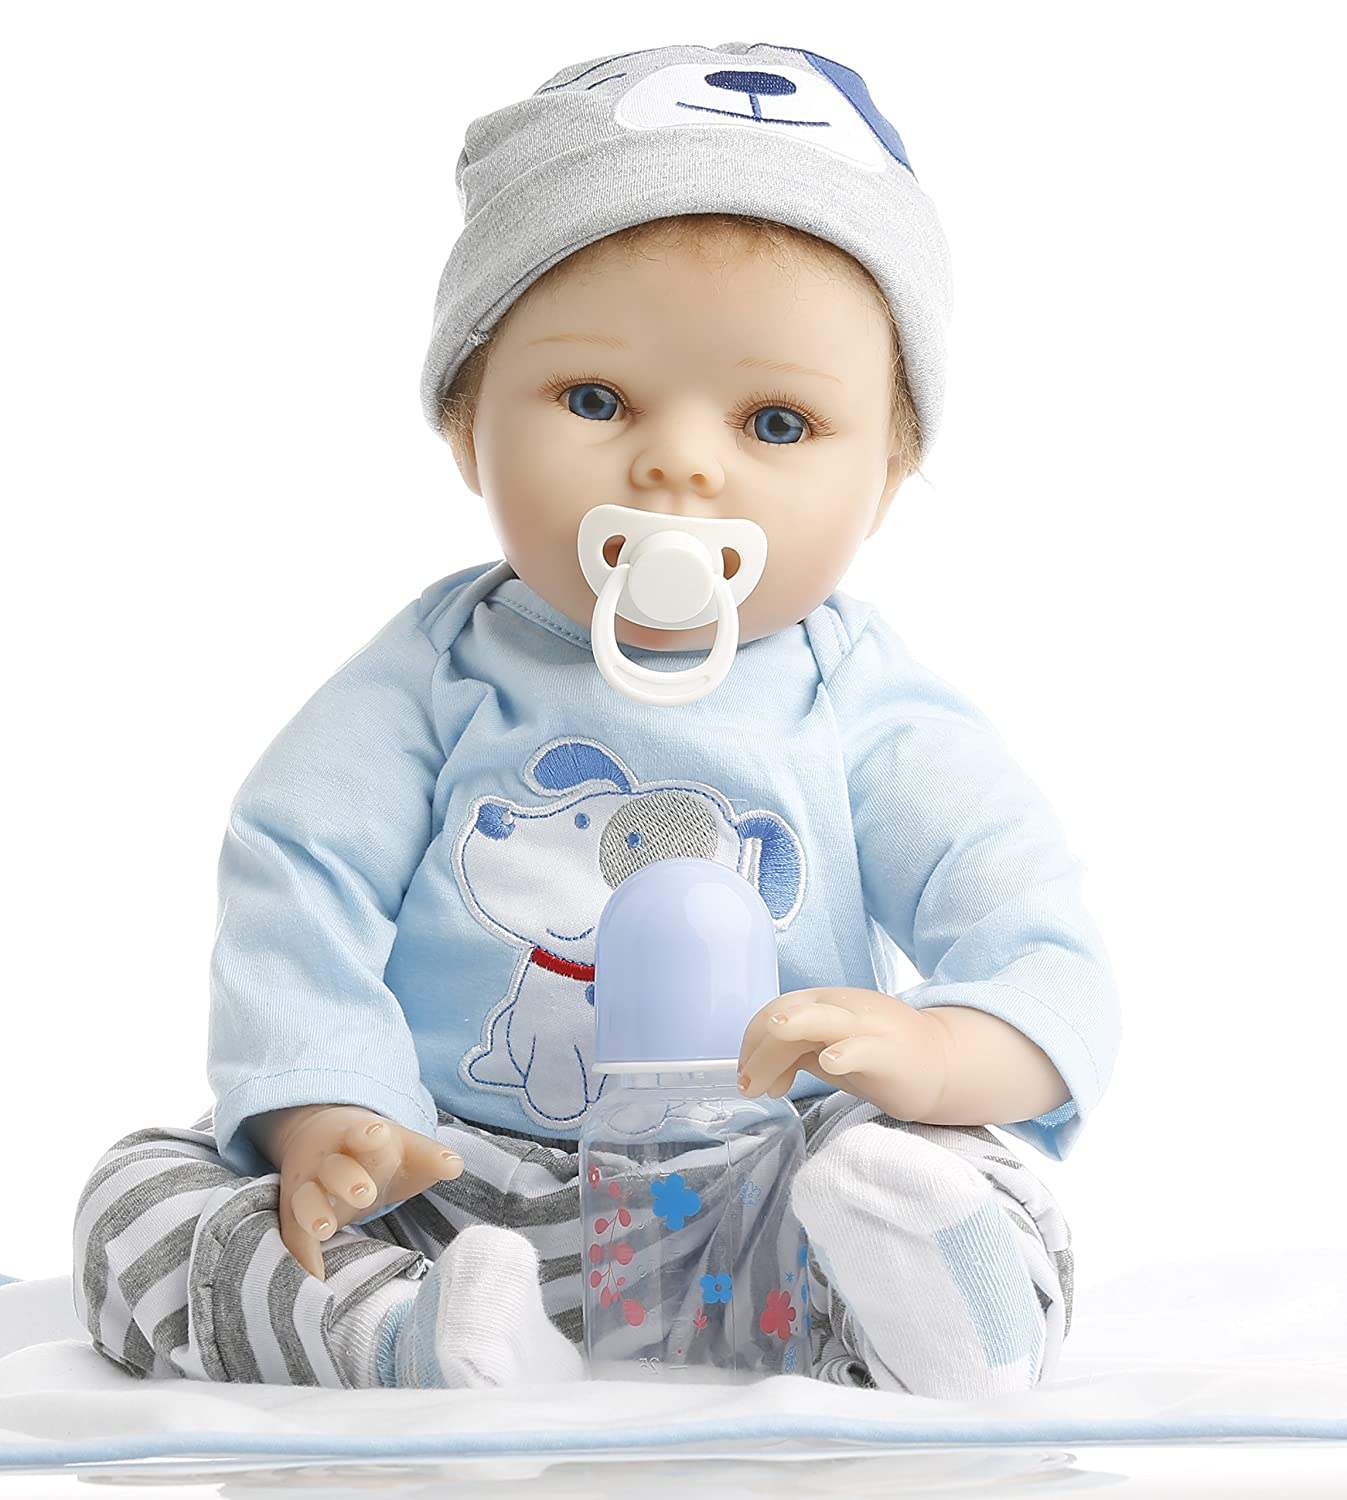 e022e1b70 Buy NPK Collection Reborn Baby Doll realistic baby dolls 22 inch ...